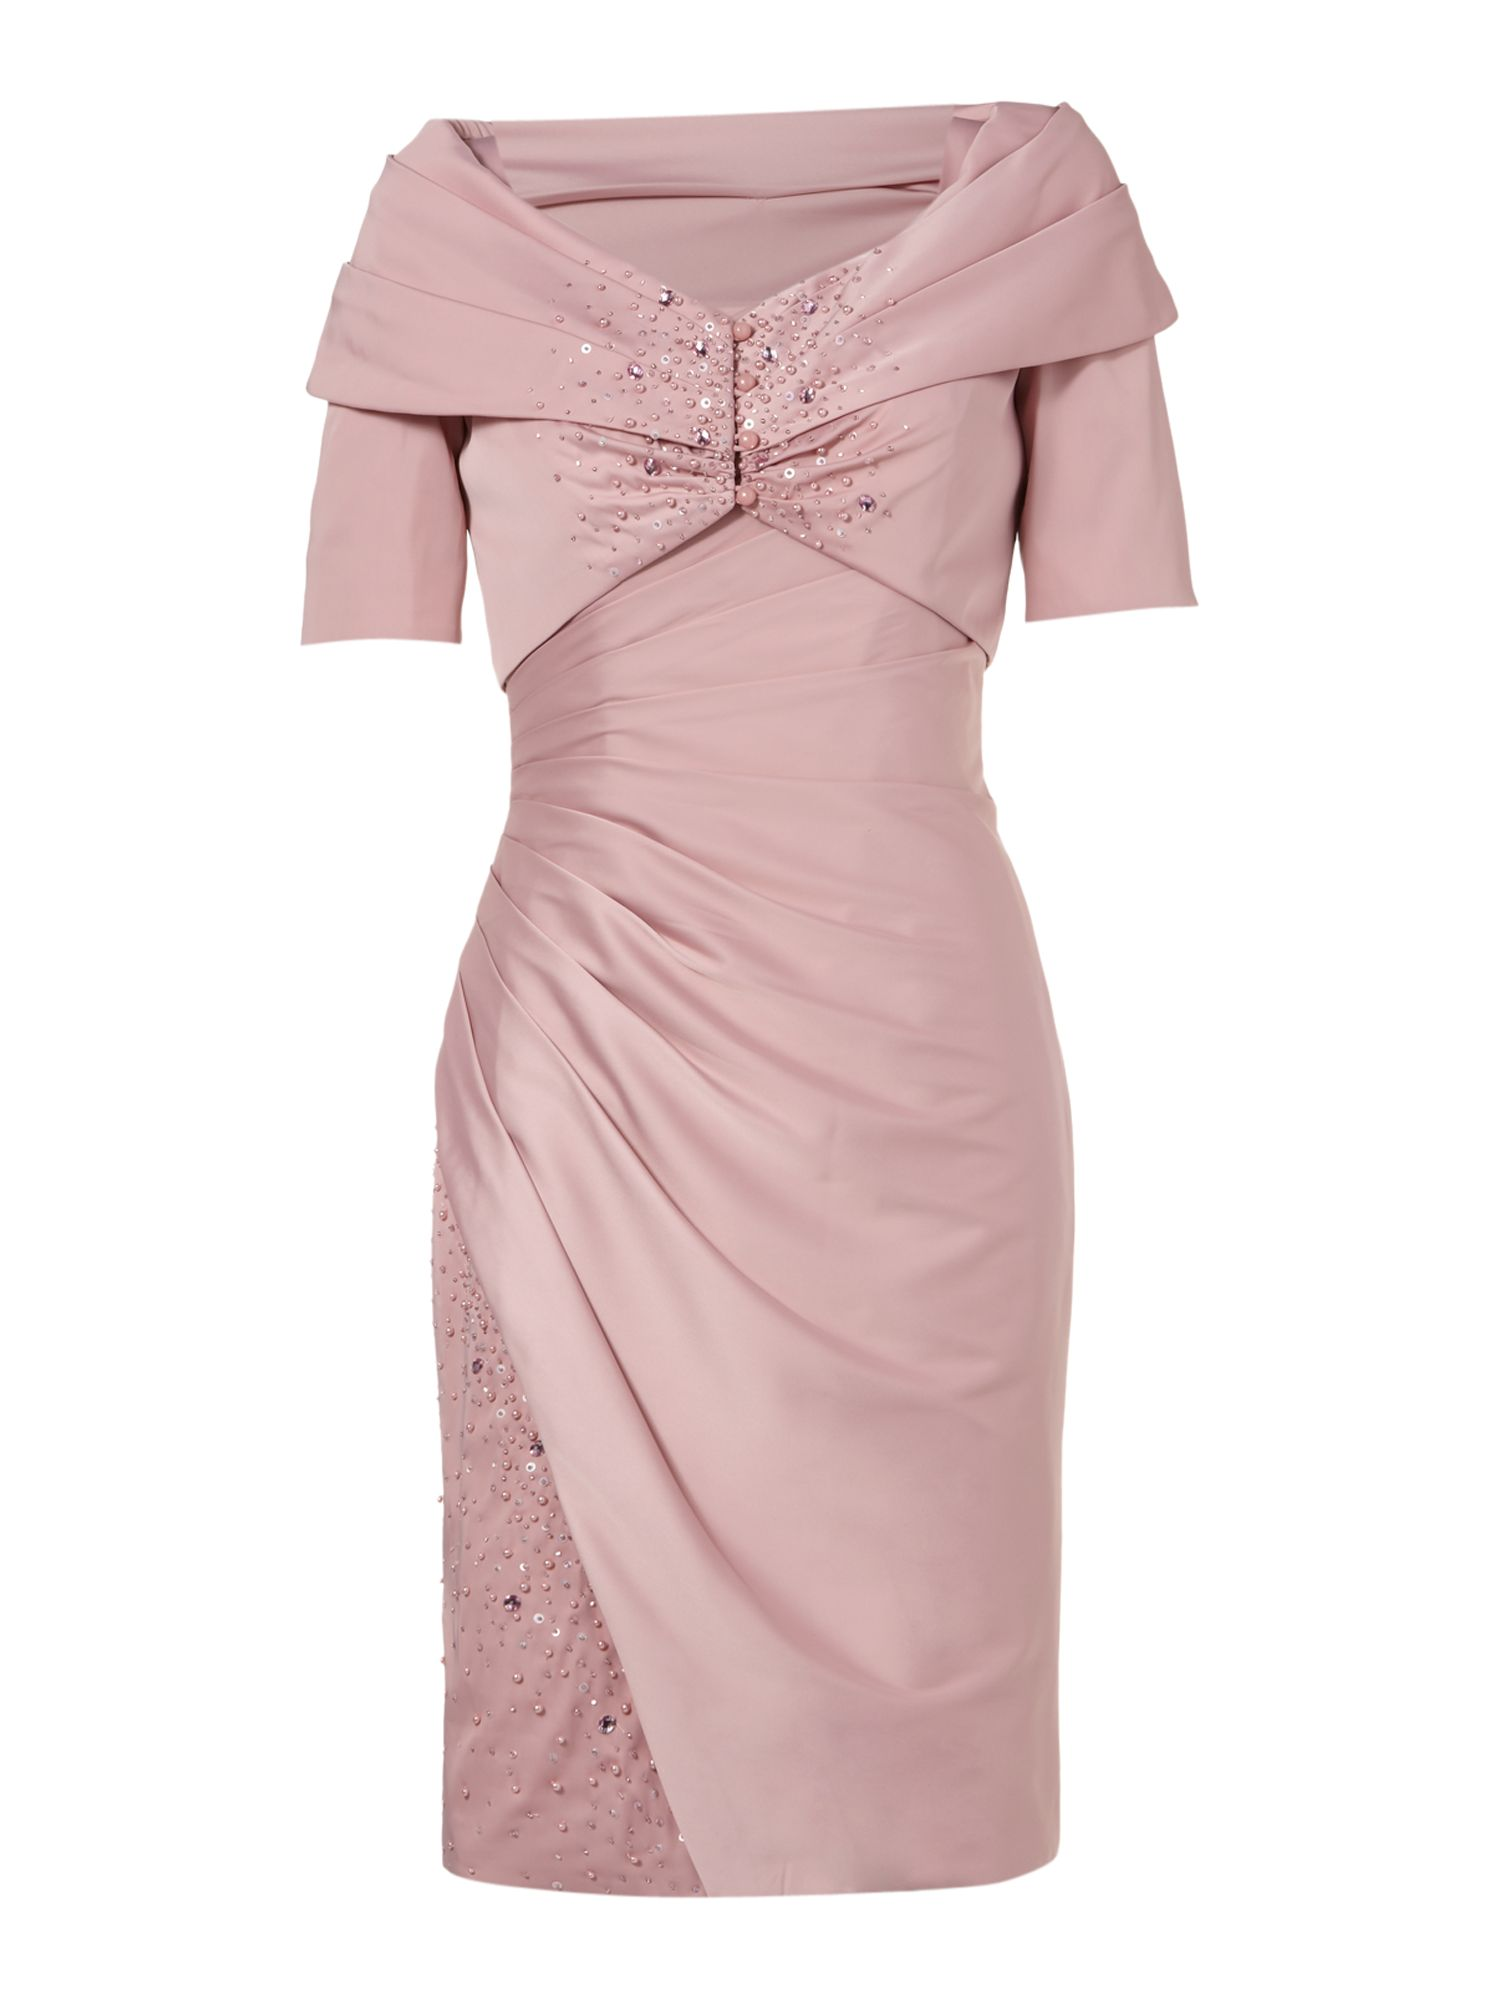 Anoushka g danielle strap dress and jacket in pink lyst for Jacket to wear with dress to wedding